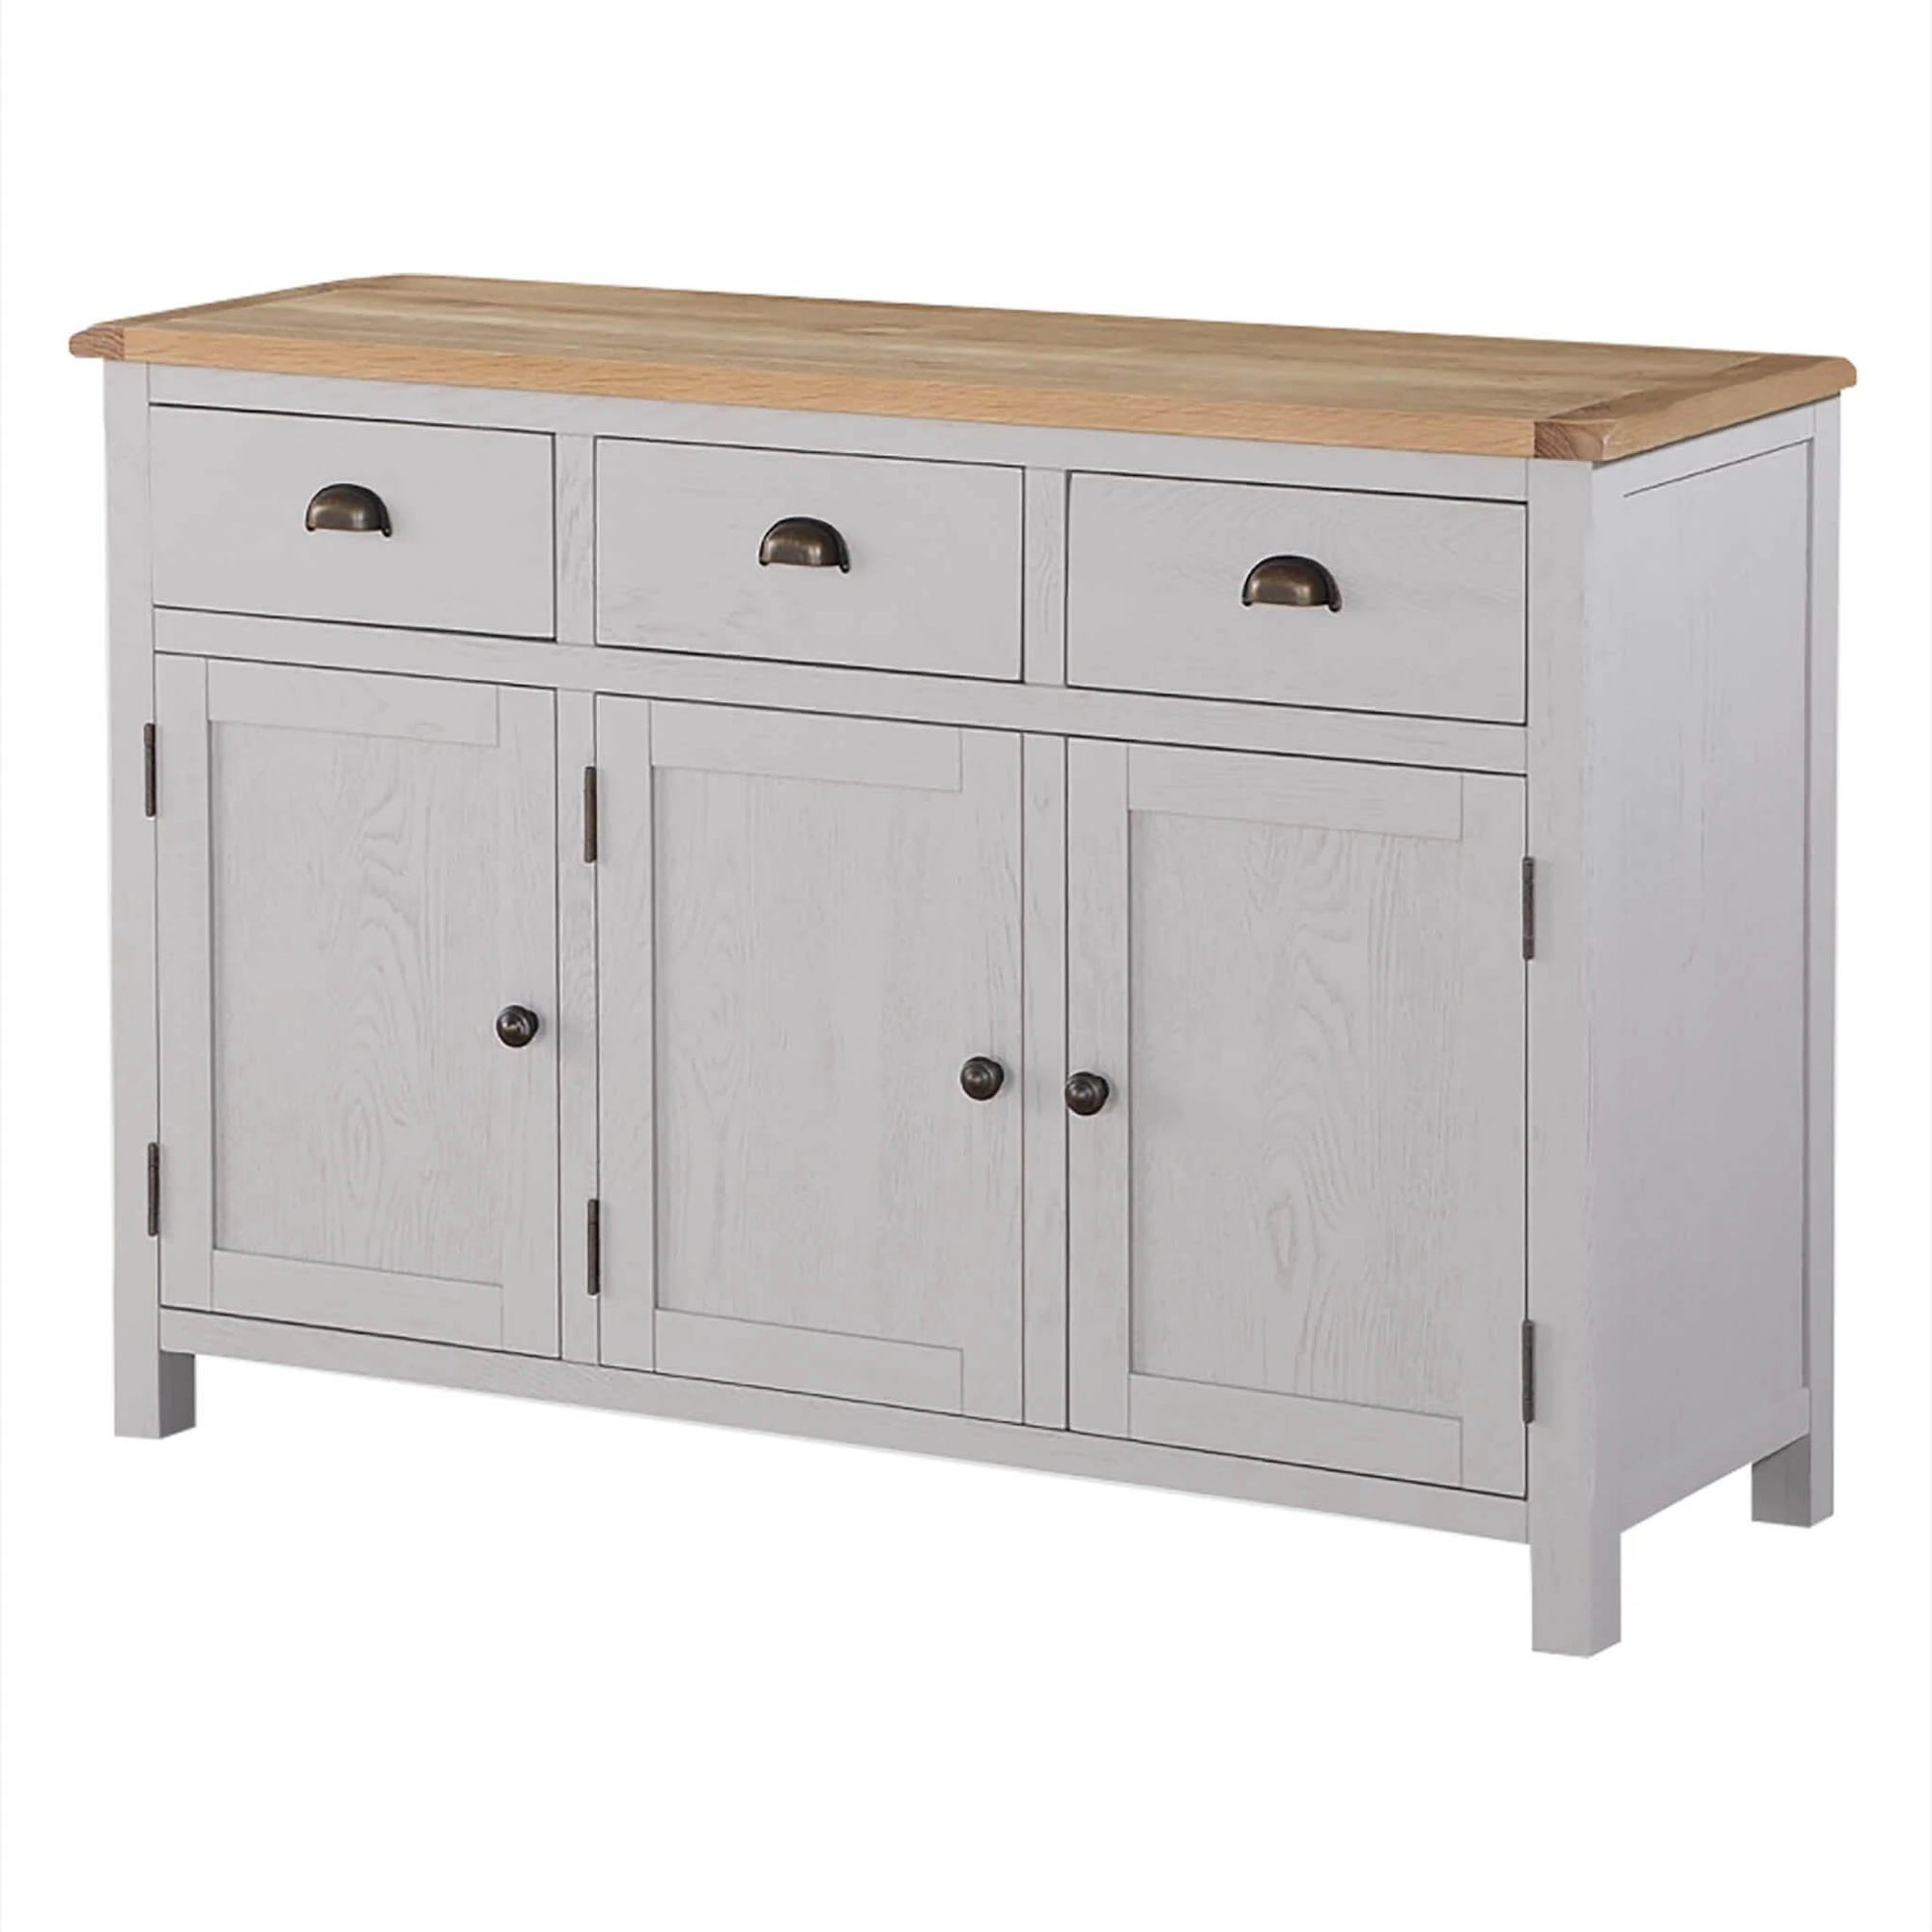 Kilmore Painted 3 Door Sideboard by Roseland Furniture